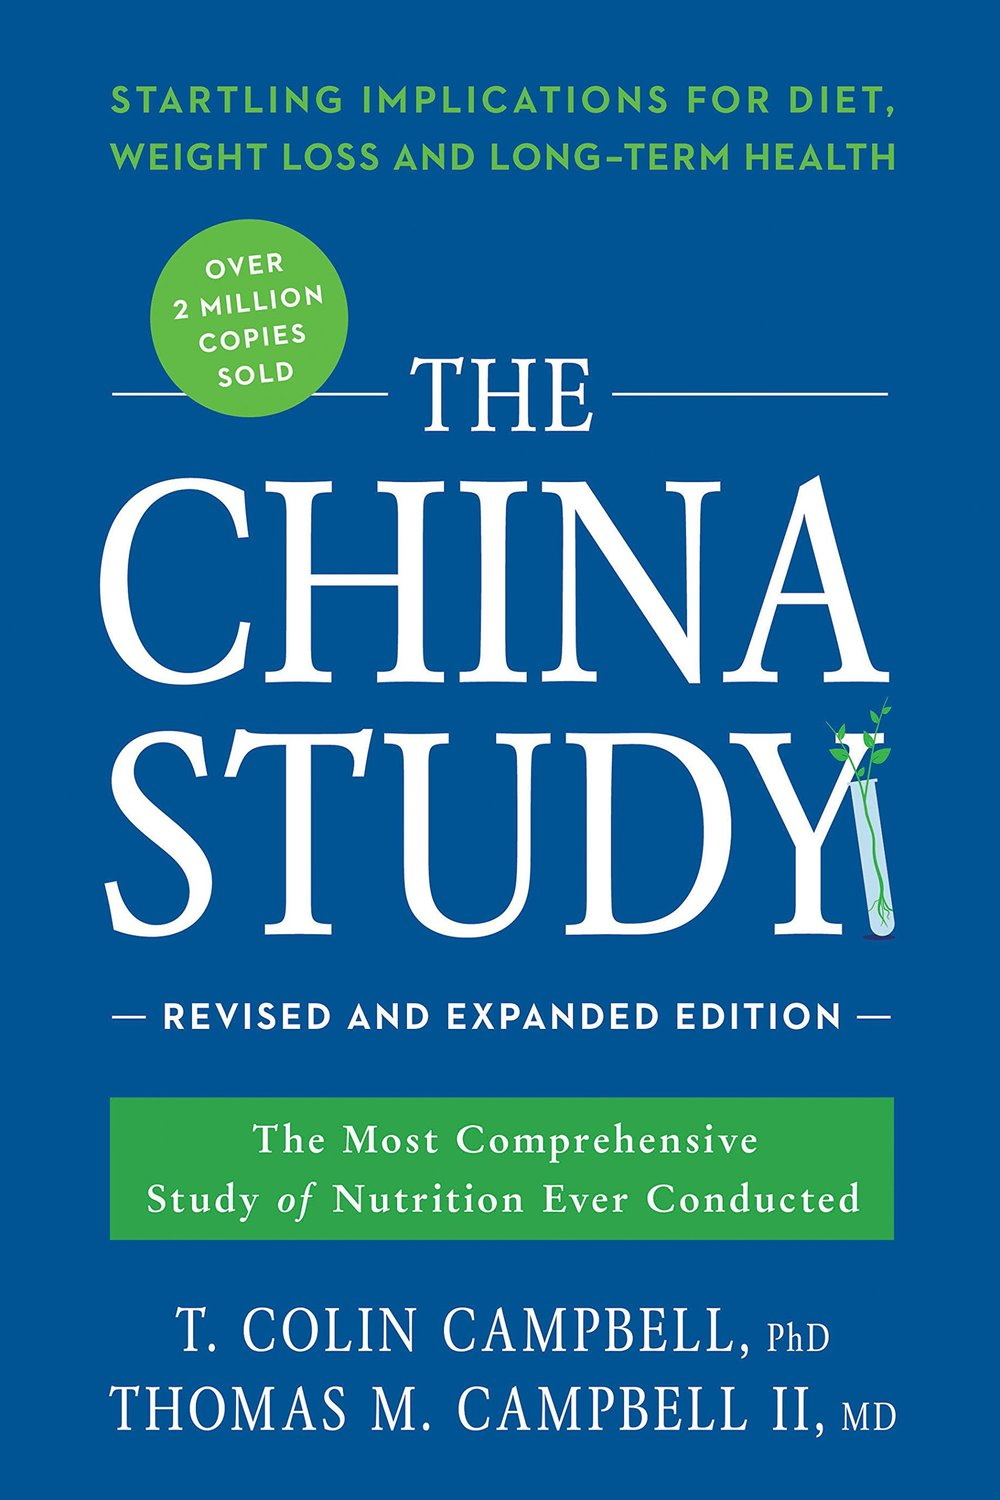 The China Study  by T. Colin Campbell, PhD and Thomas M. Campbell II